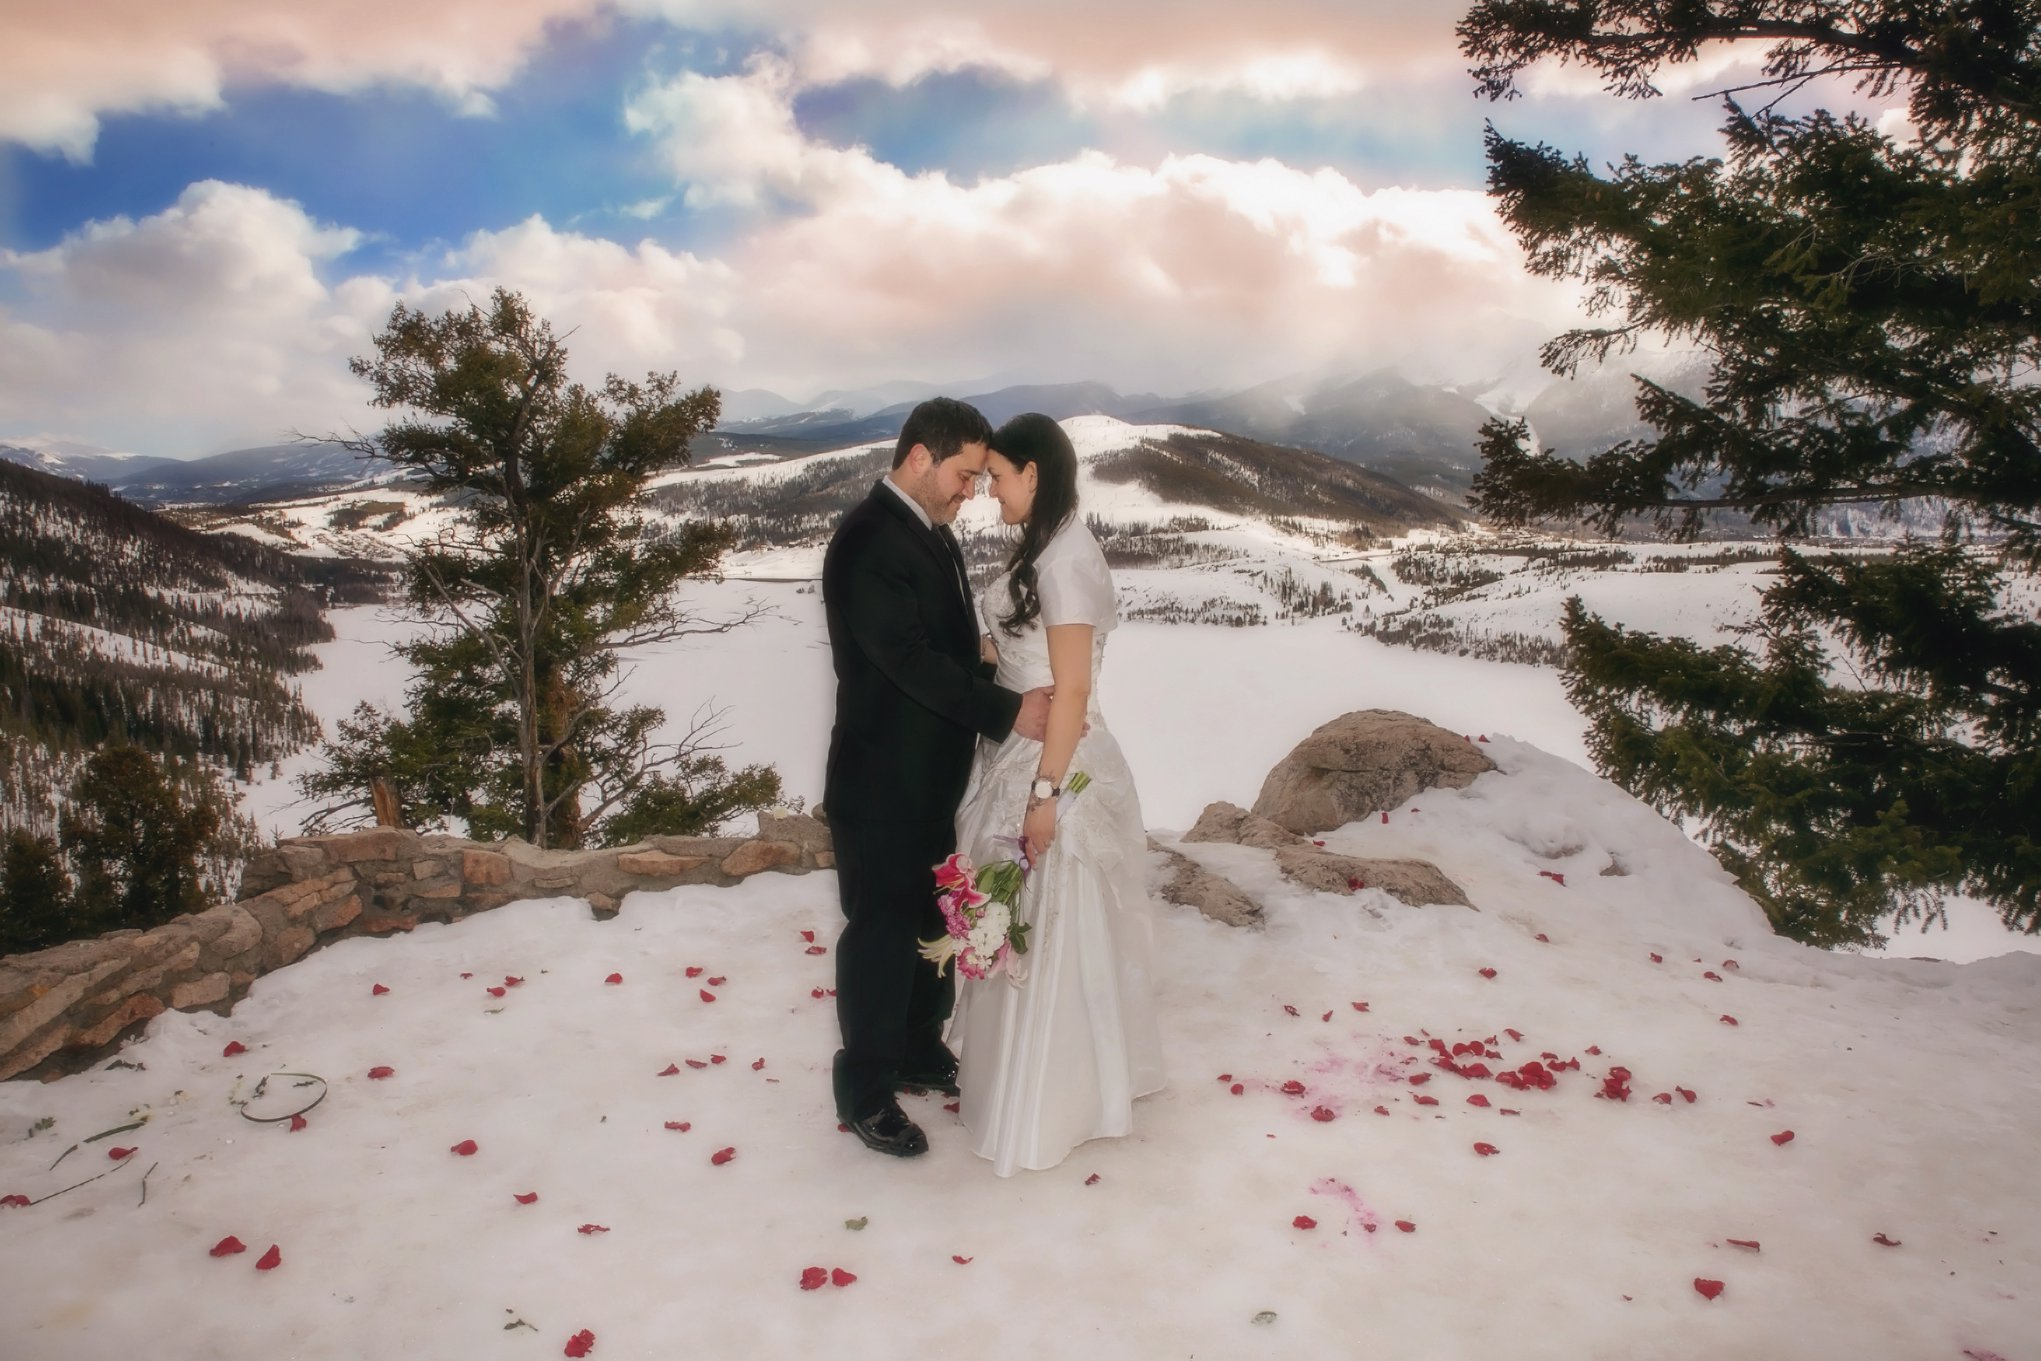 Shi & Gilbert - I highly recommend Sara. We chose her because when I saw her outdoor photos, I knew she was what we were looking for. Our wedding was outdoors and our pictures turned out beautiful!!! She captured the moments perfectly. Thank you Sara!